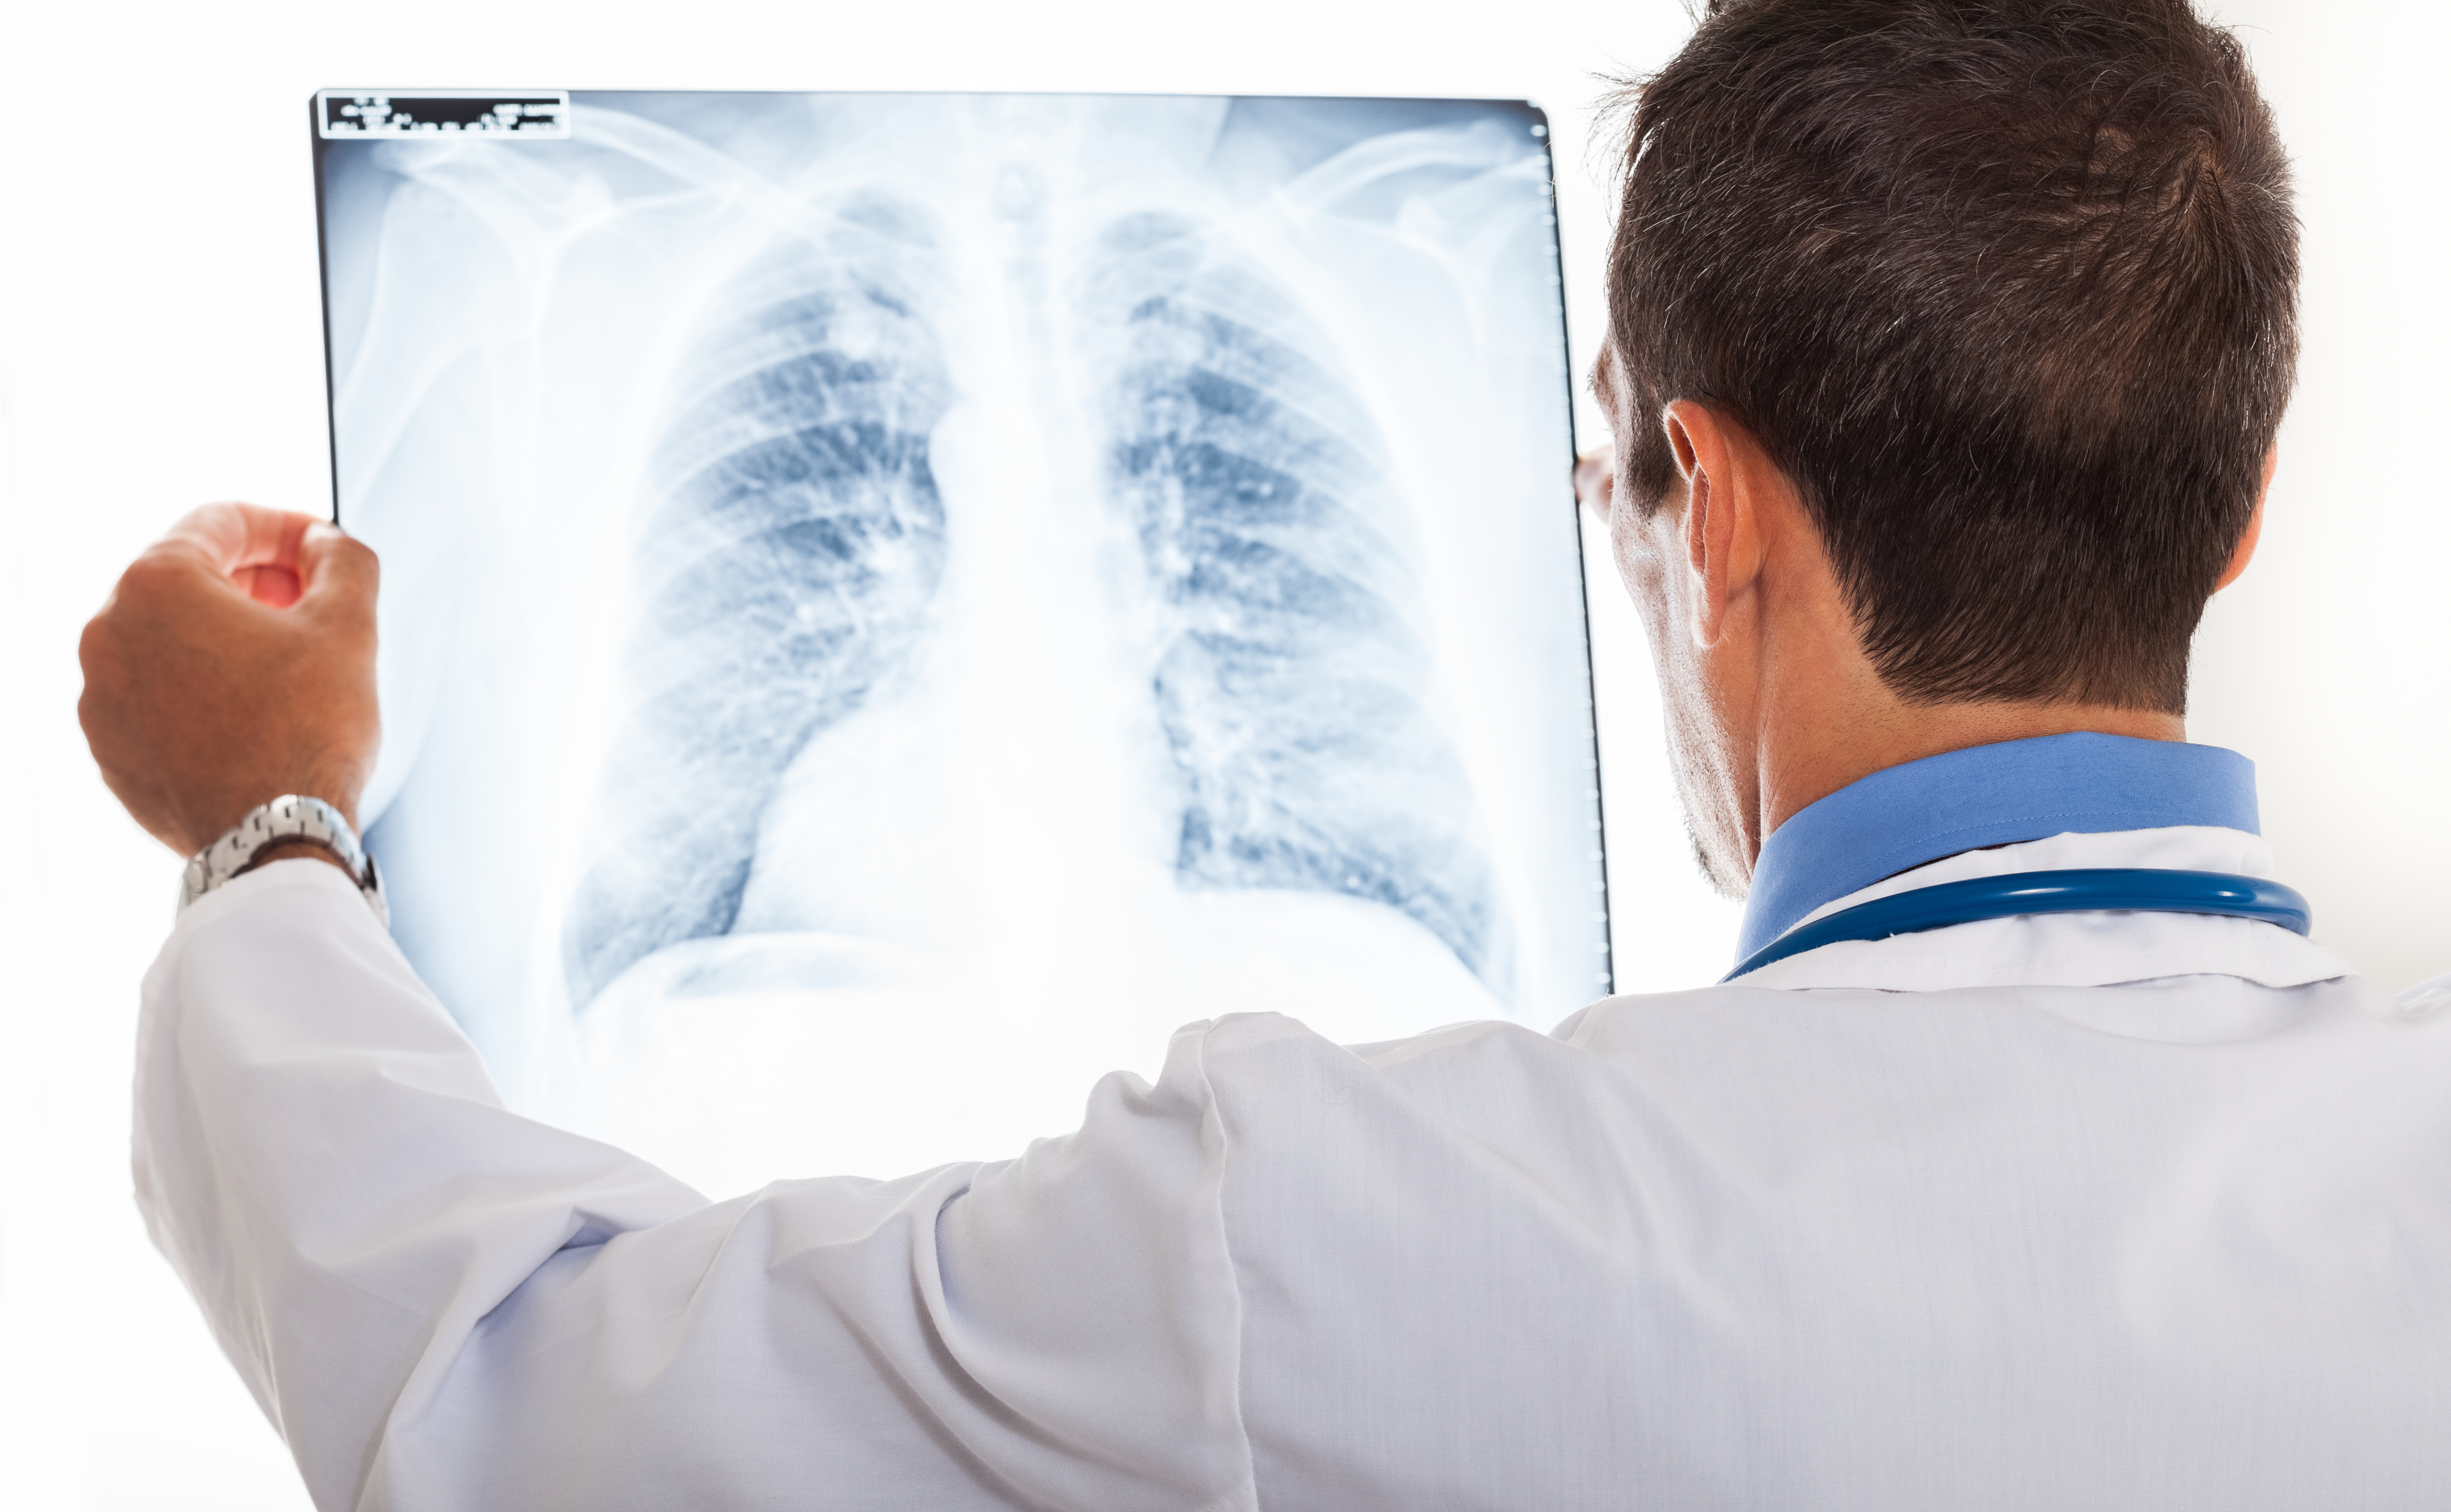 a history of detecting lung cancer at desert radiologists A new technique for detecting cancer by imaging  lung and brain cancer cells that wer  overdiagnosis of pulmonary embolism on ct-angiogram by radiologists may.